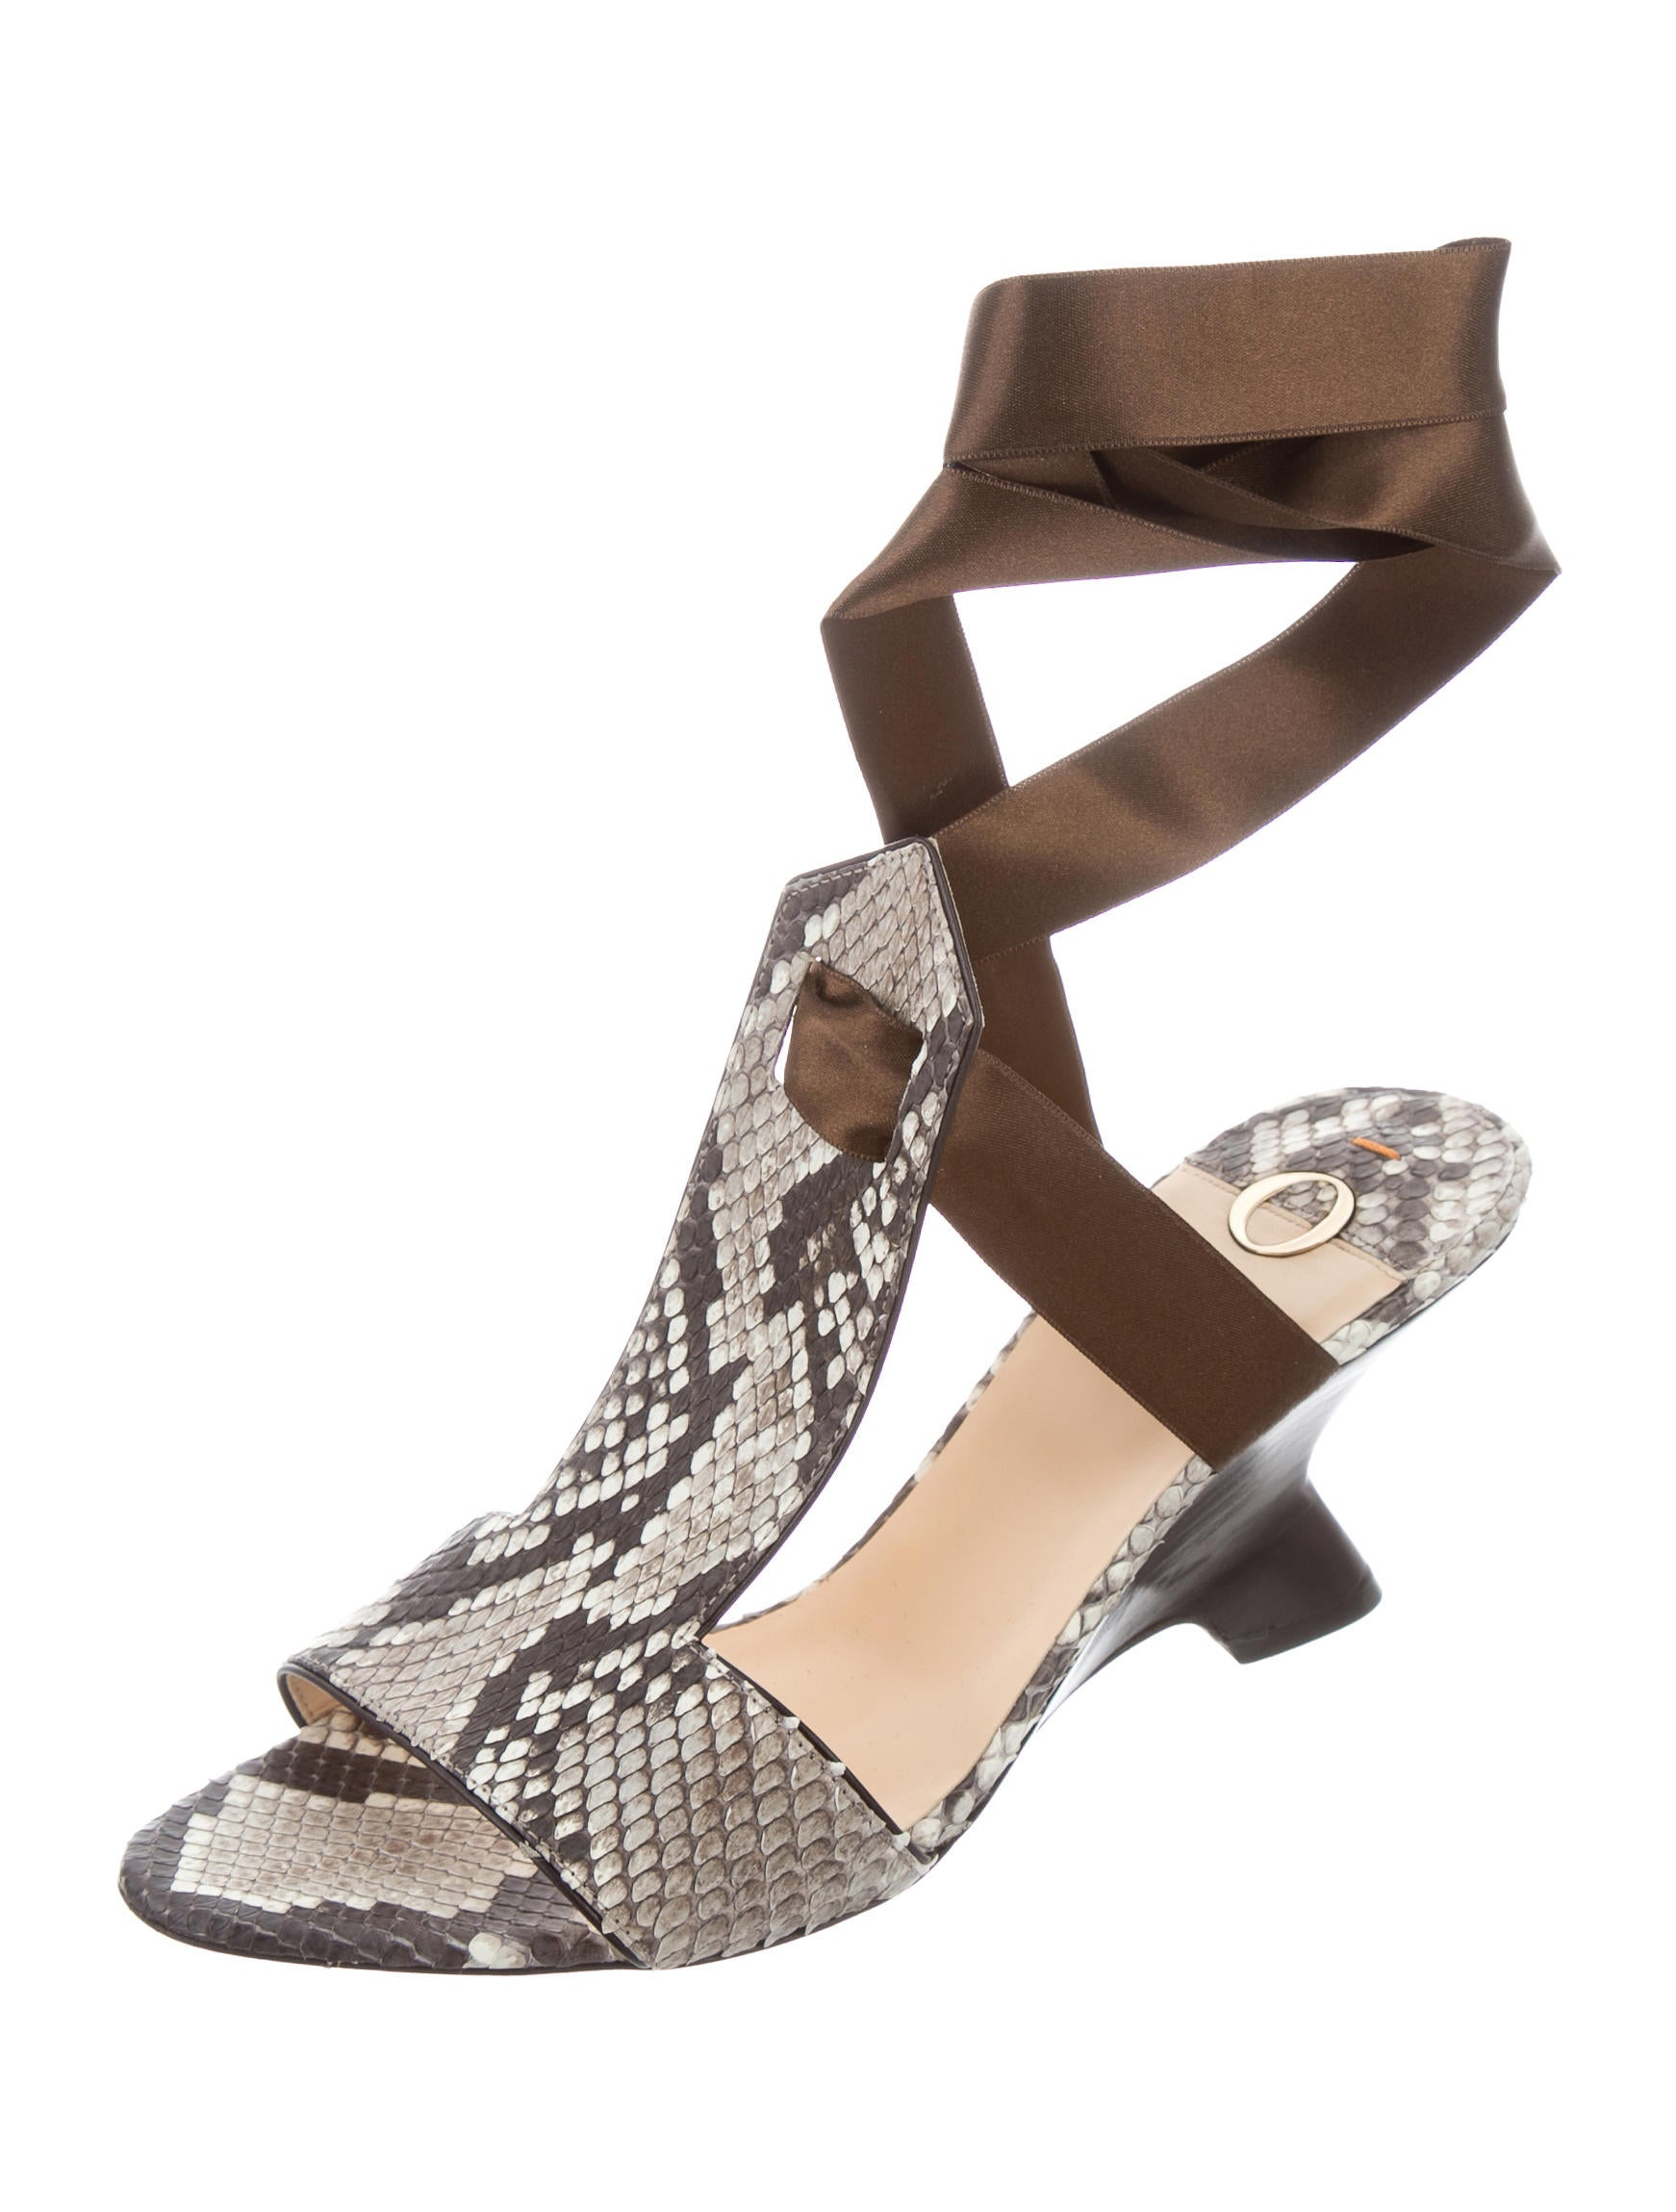 o jour snakeskin wedge sandals shoes ojo20086 the